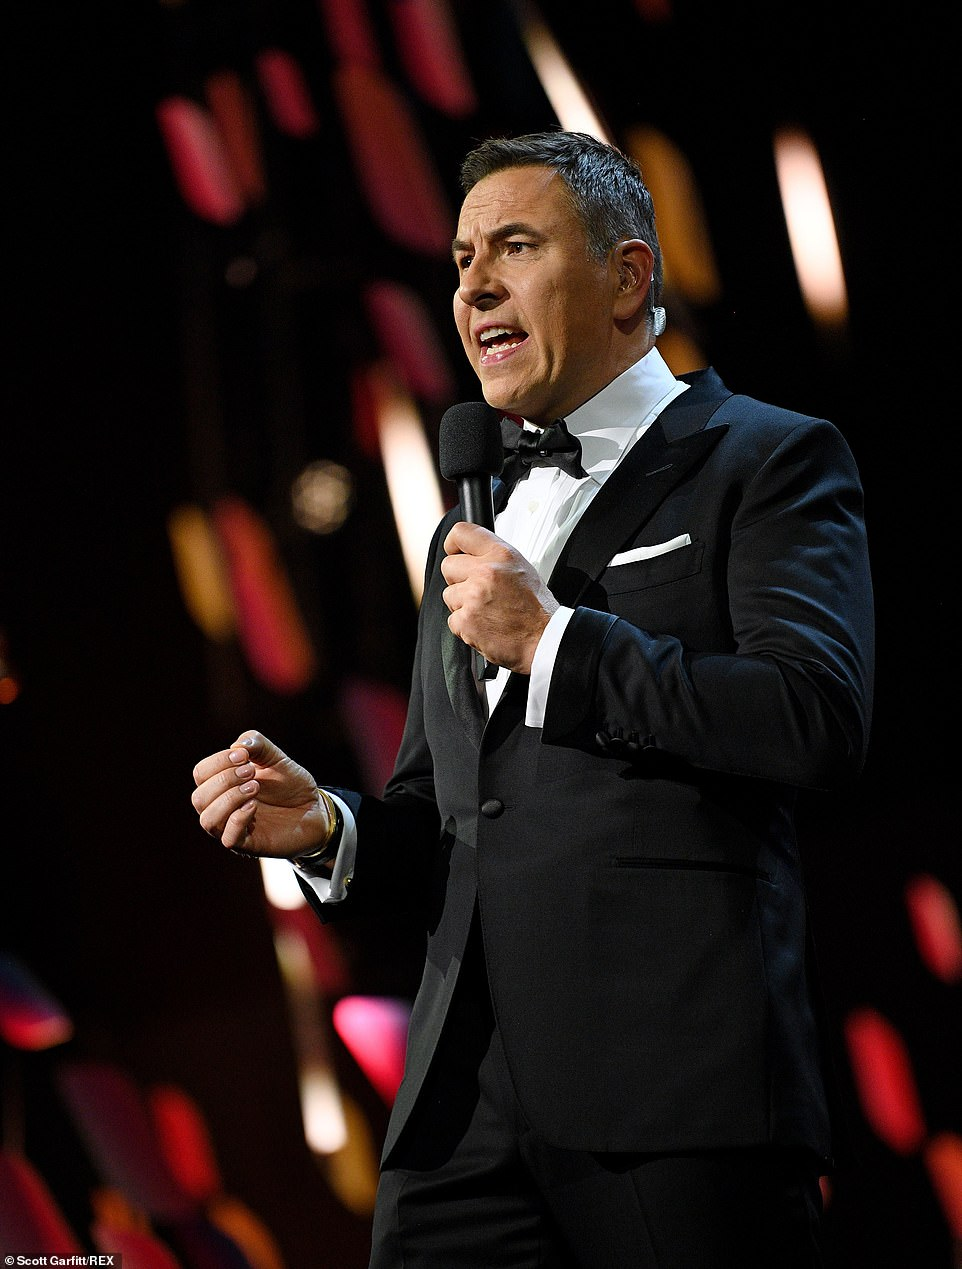 He finished the show by saying: 'Up next is the news. And the headlines are David Walliams sacked from the NTAs!'